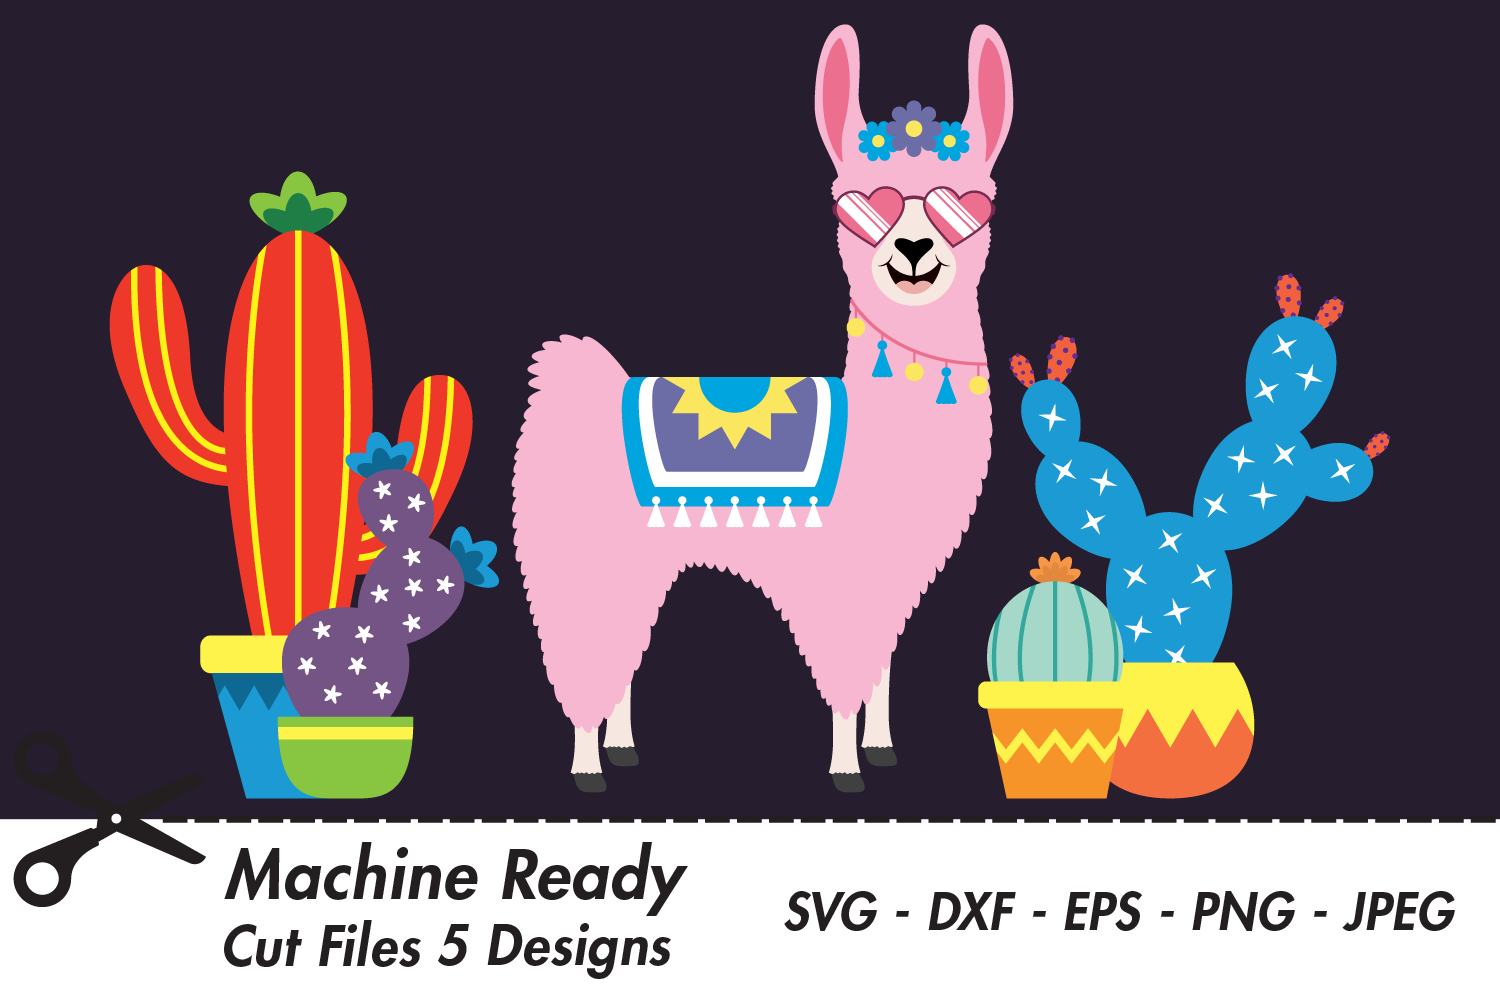 Download Free Cute Girl Llama With Shades And Cacti Graphic By Captaincreative for Cricut Explore, Silhouette and other cutting machines.